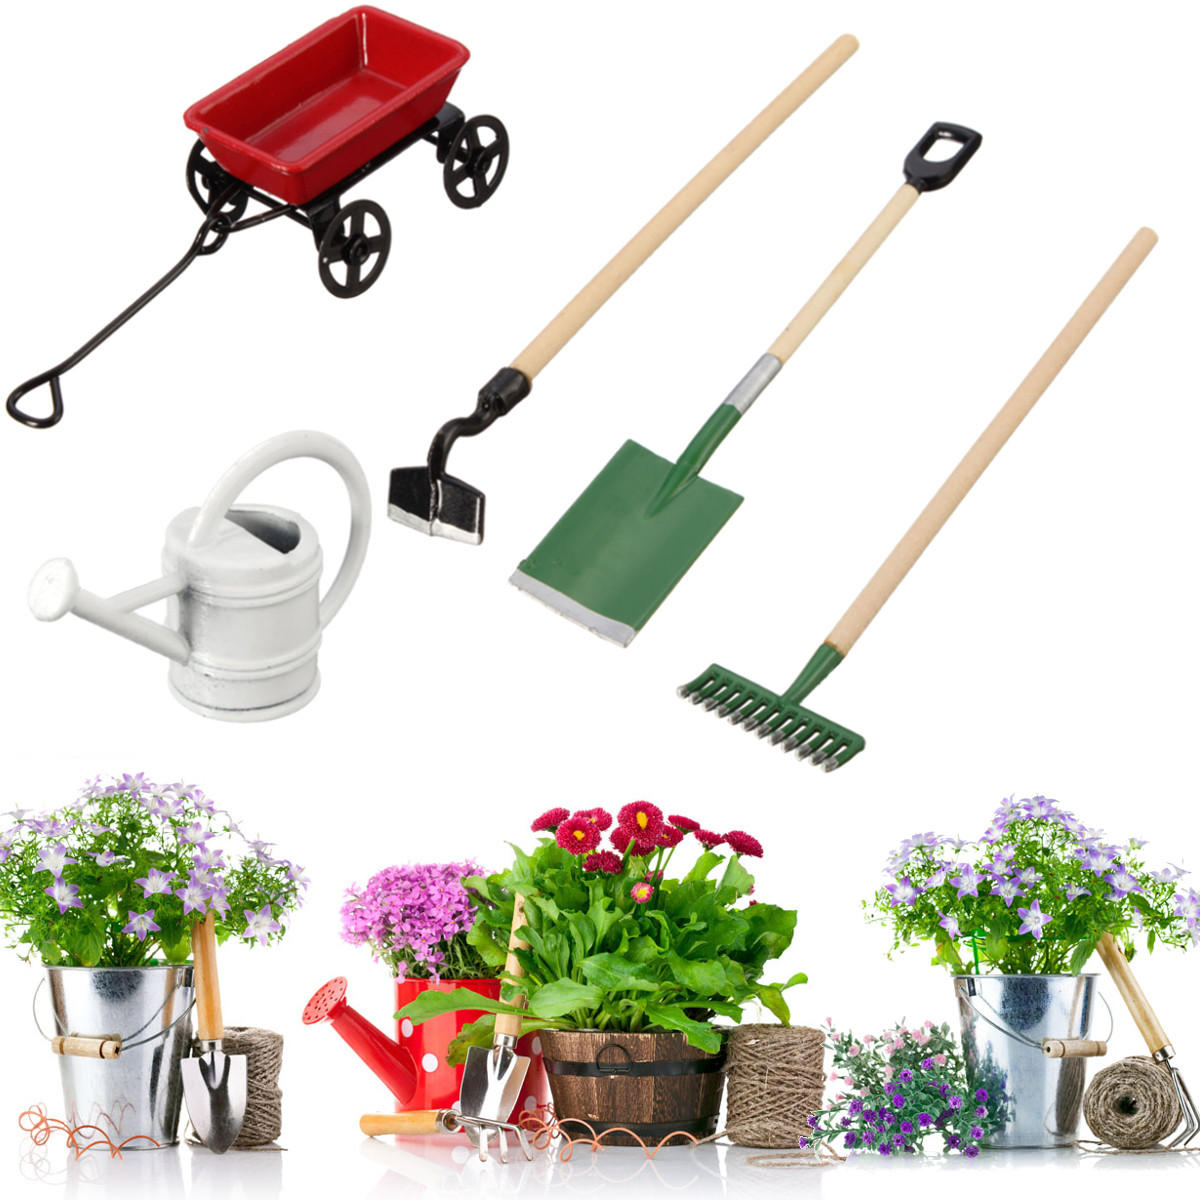 Metal Watering Can Pulling Cart Spade Rake Garden Tools Dollhouse Miniatures Accessories